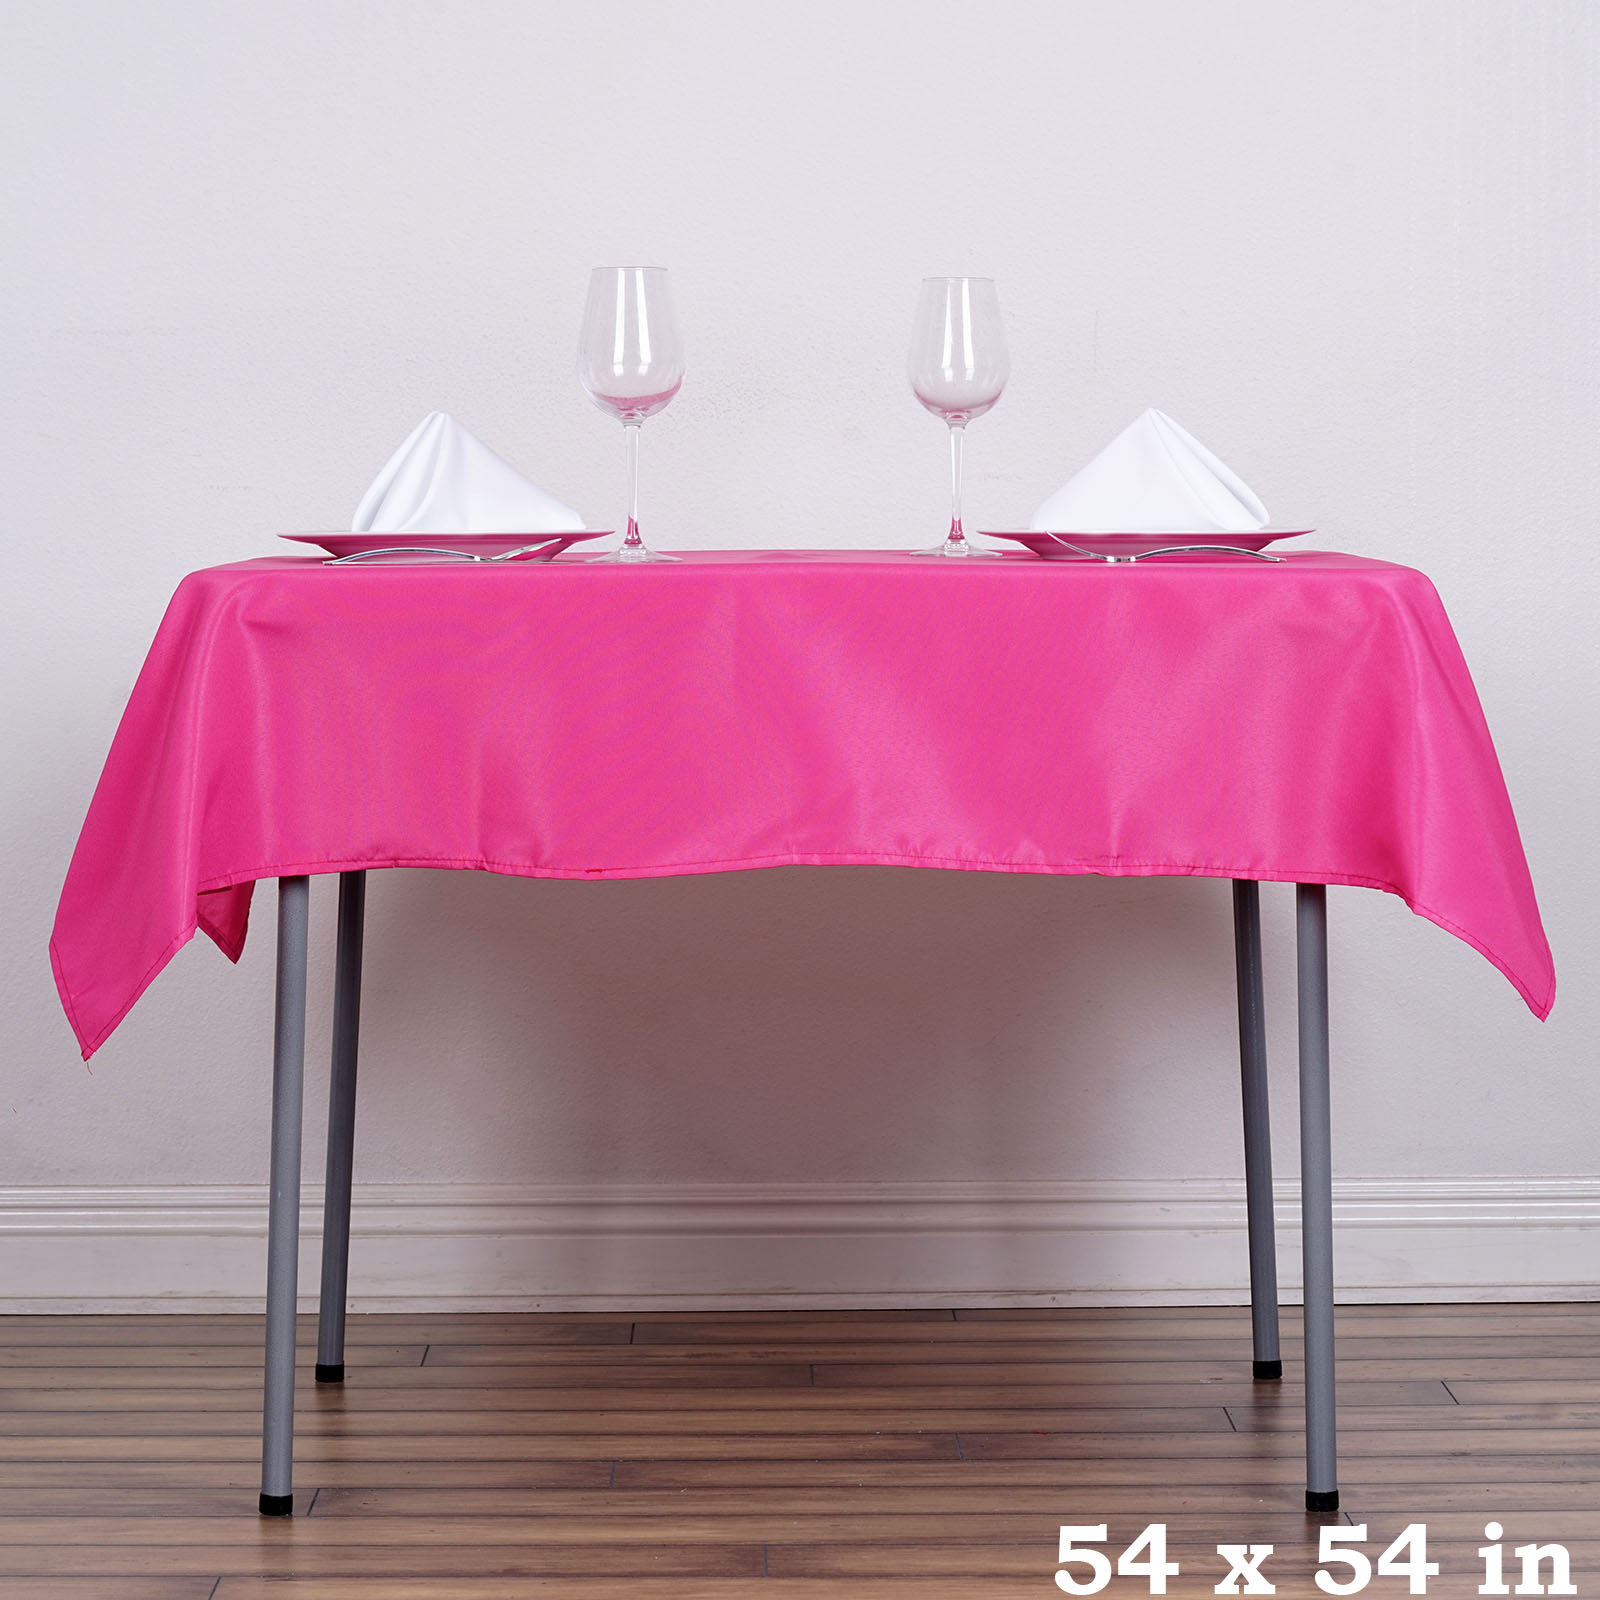 how to get wax off a polyester tablecloth